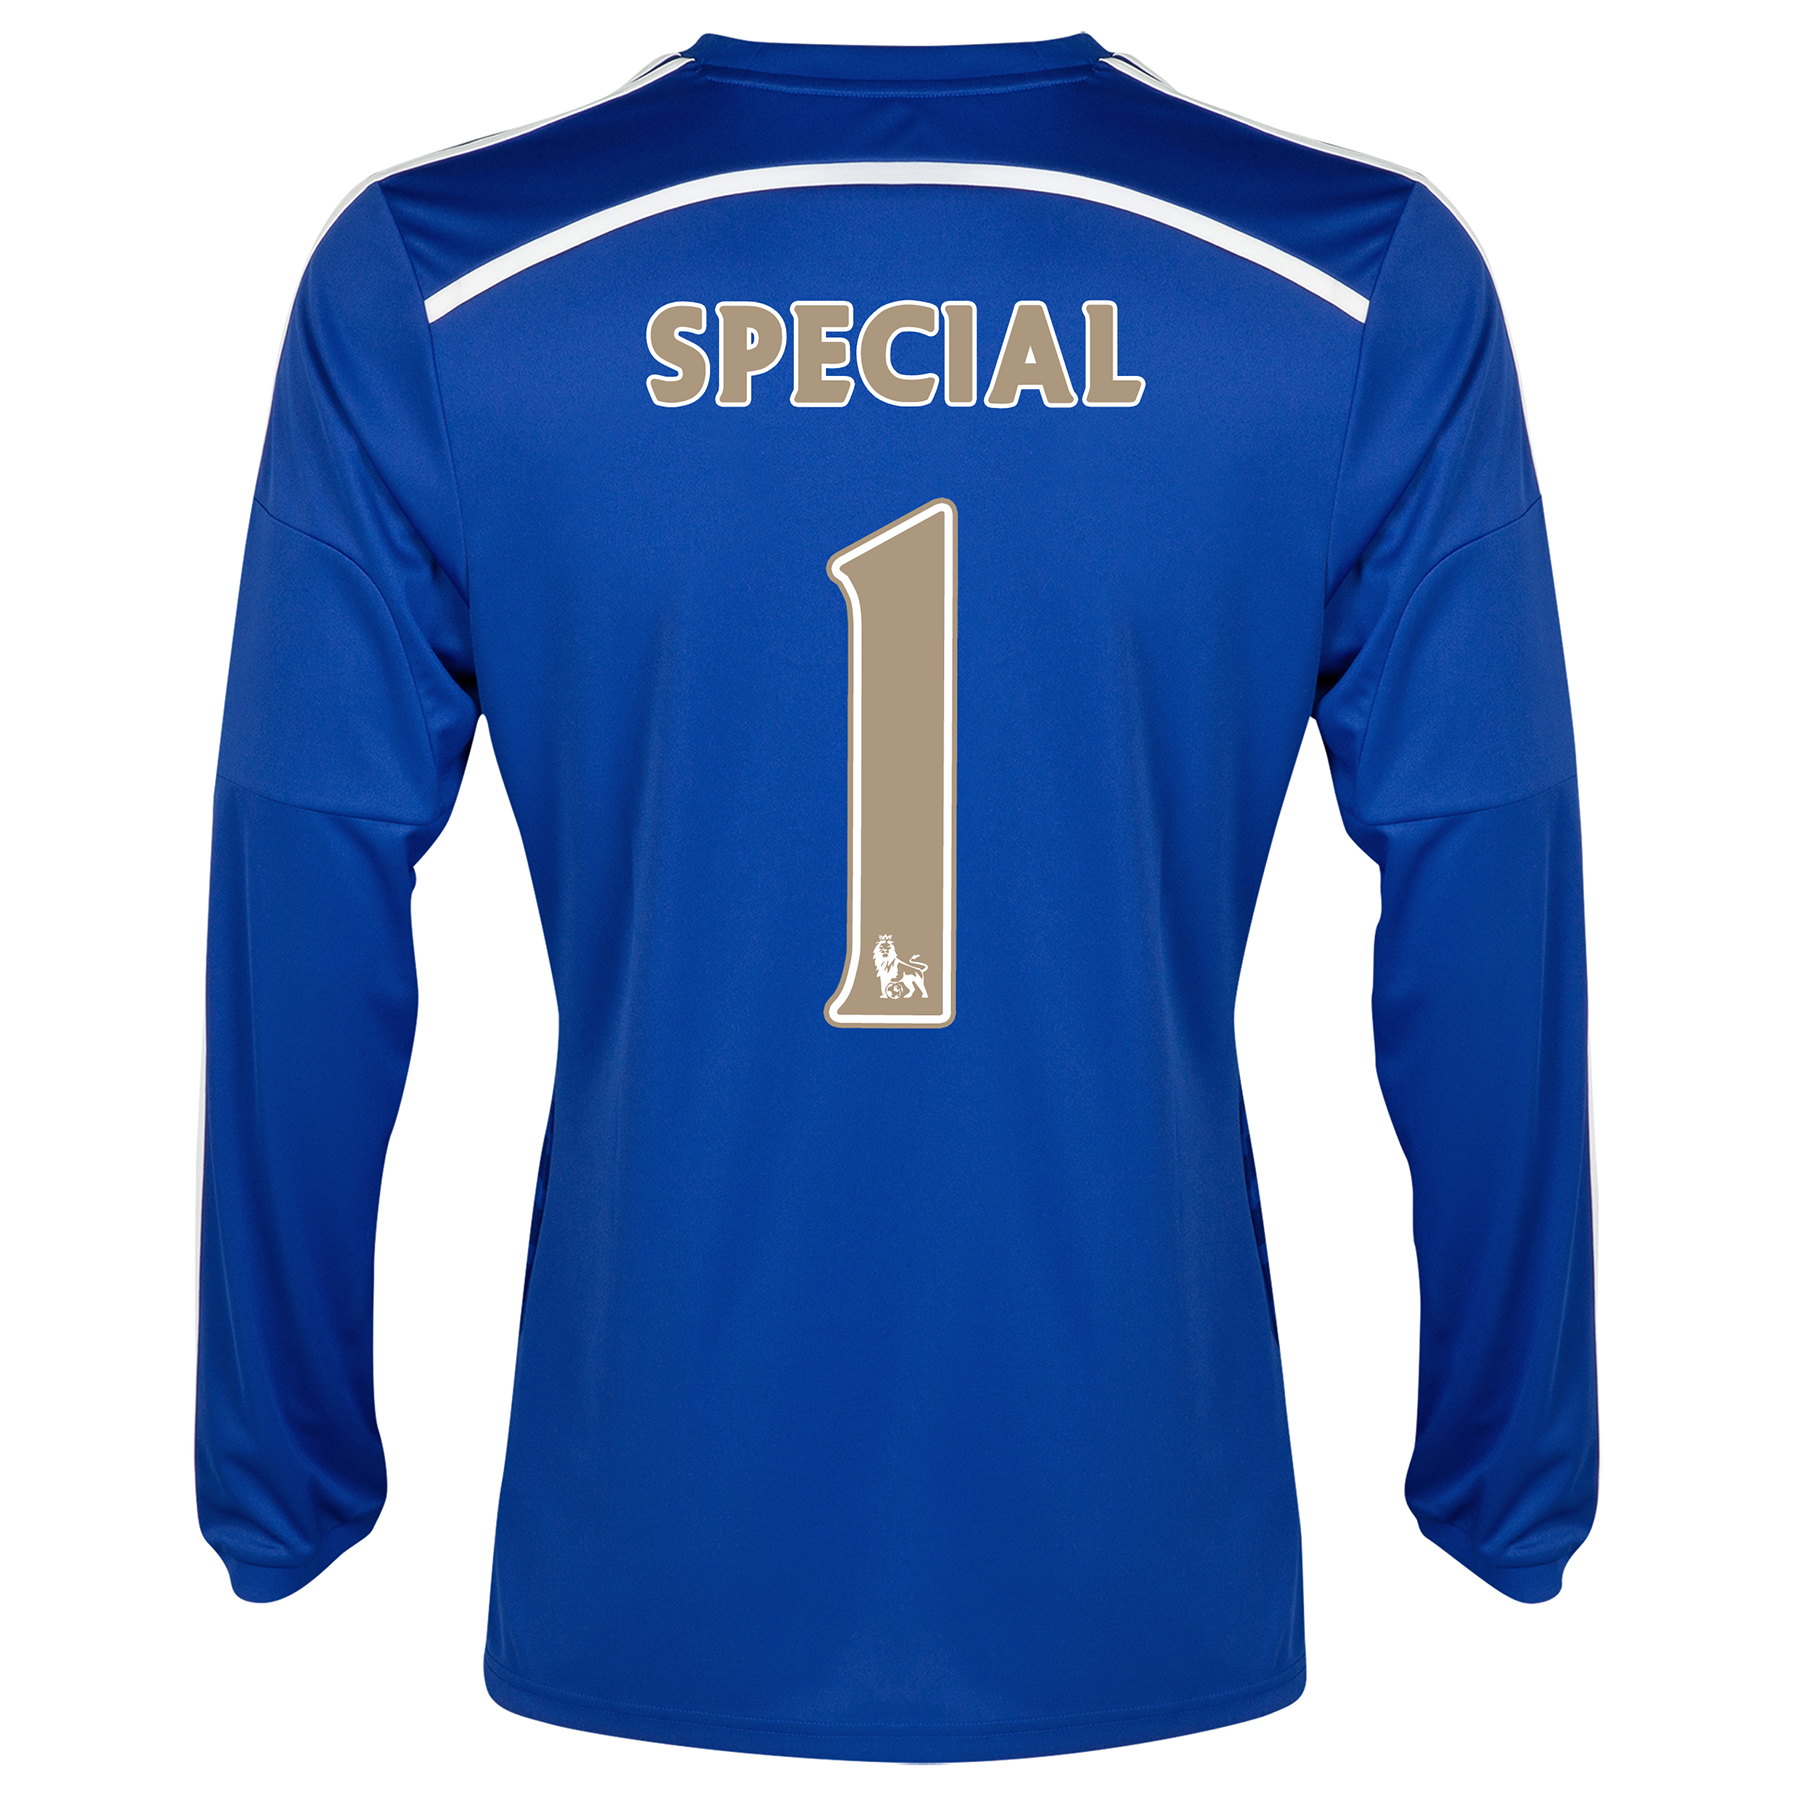 Chelsea Home Shirt 2014/15 - Long Sleeve - Kids Blue with Special 1 printing